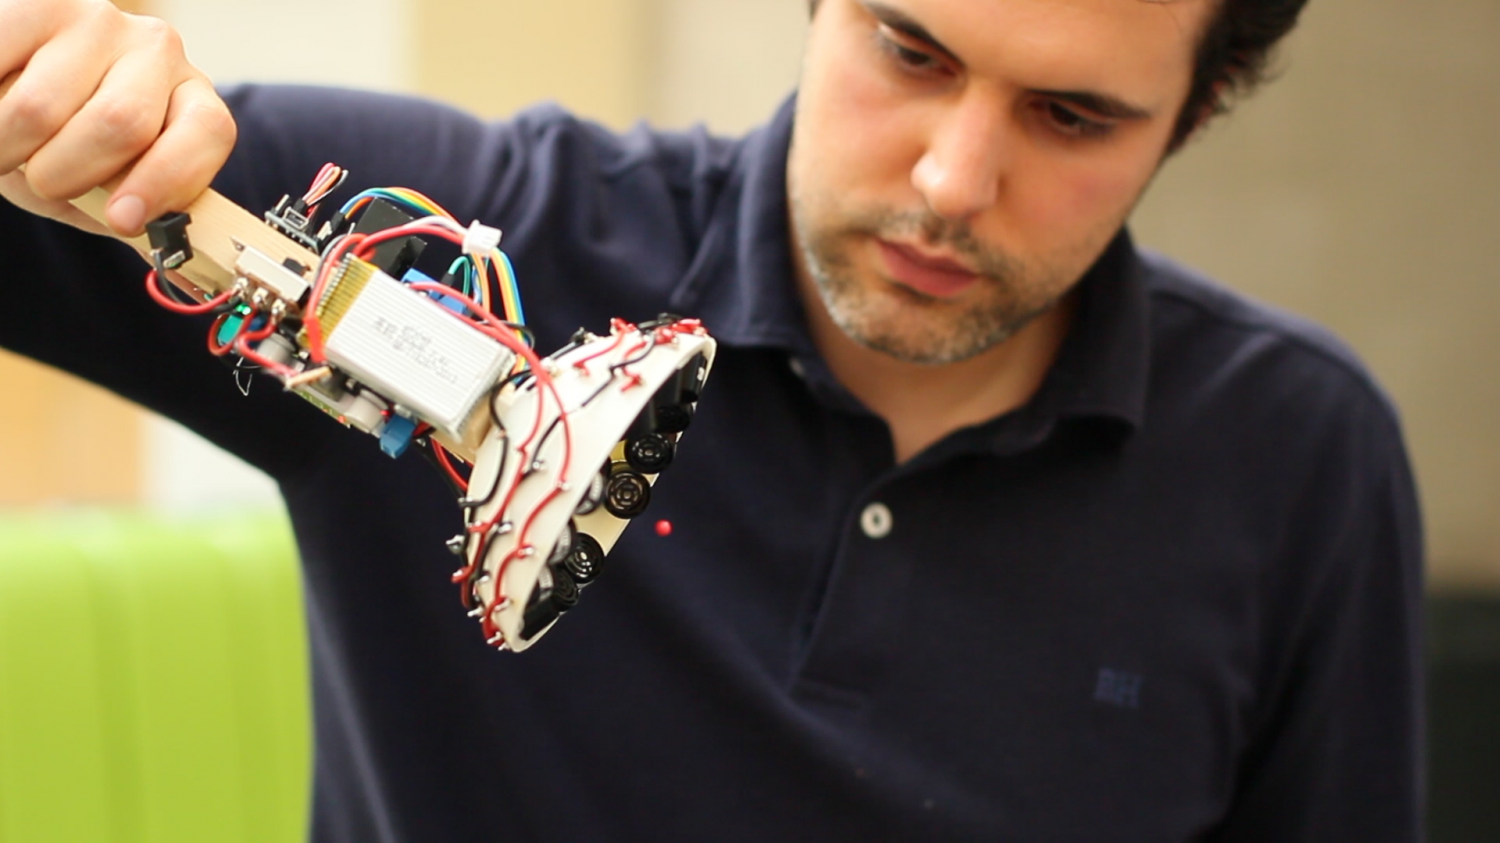 Want to 3D print your own sonic tractor beam? Here's how